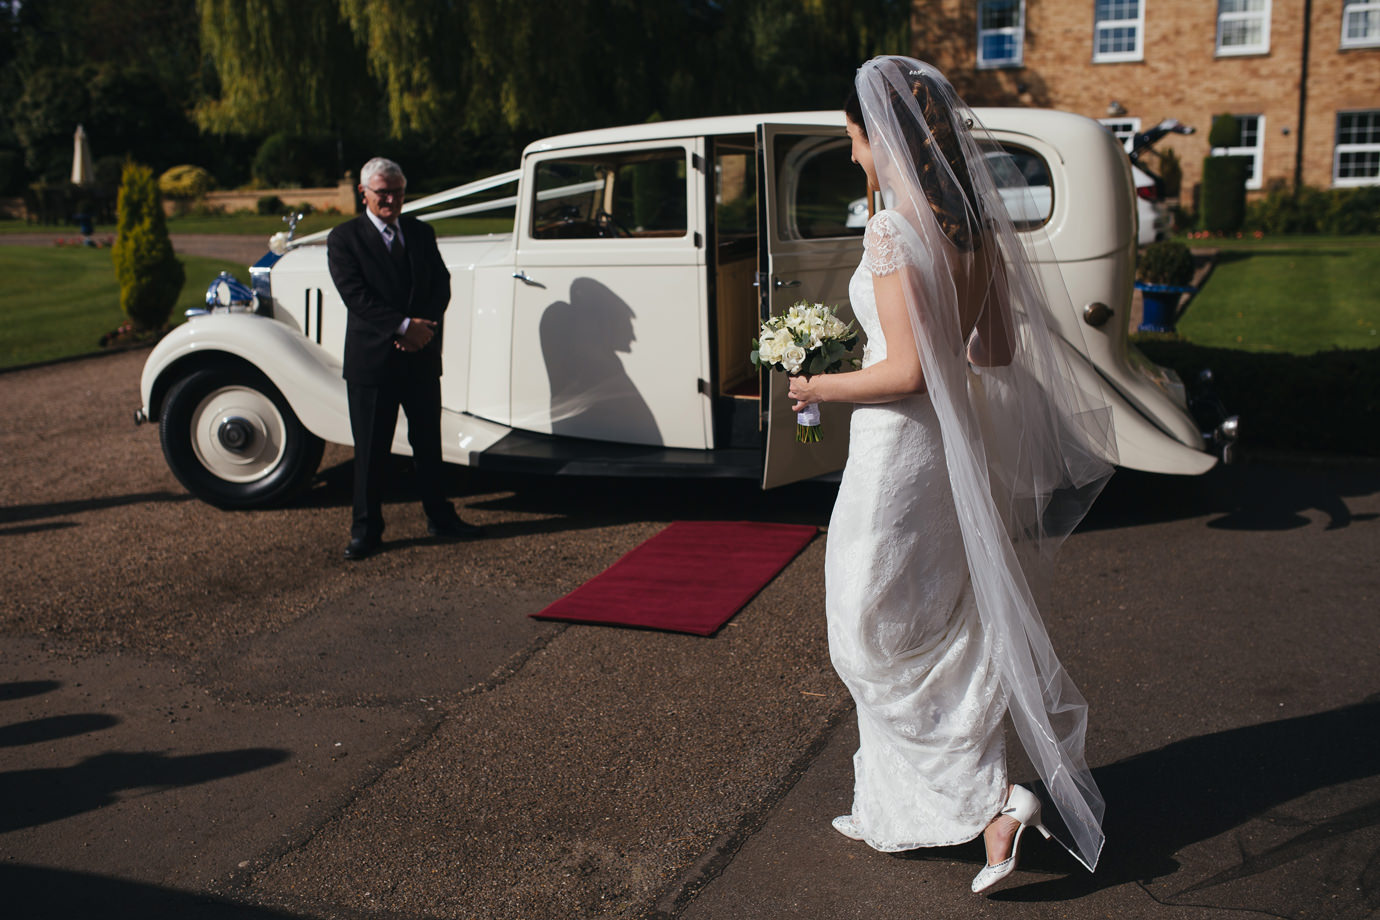 To the wedding car!